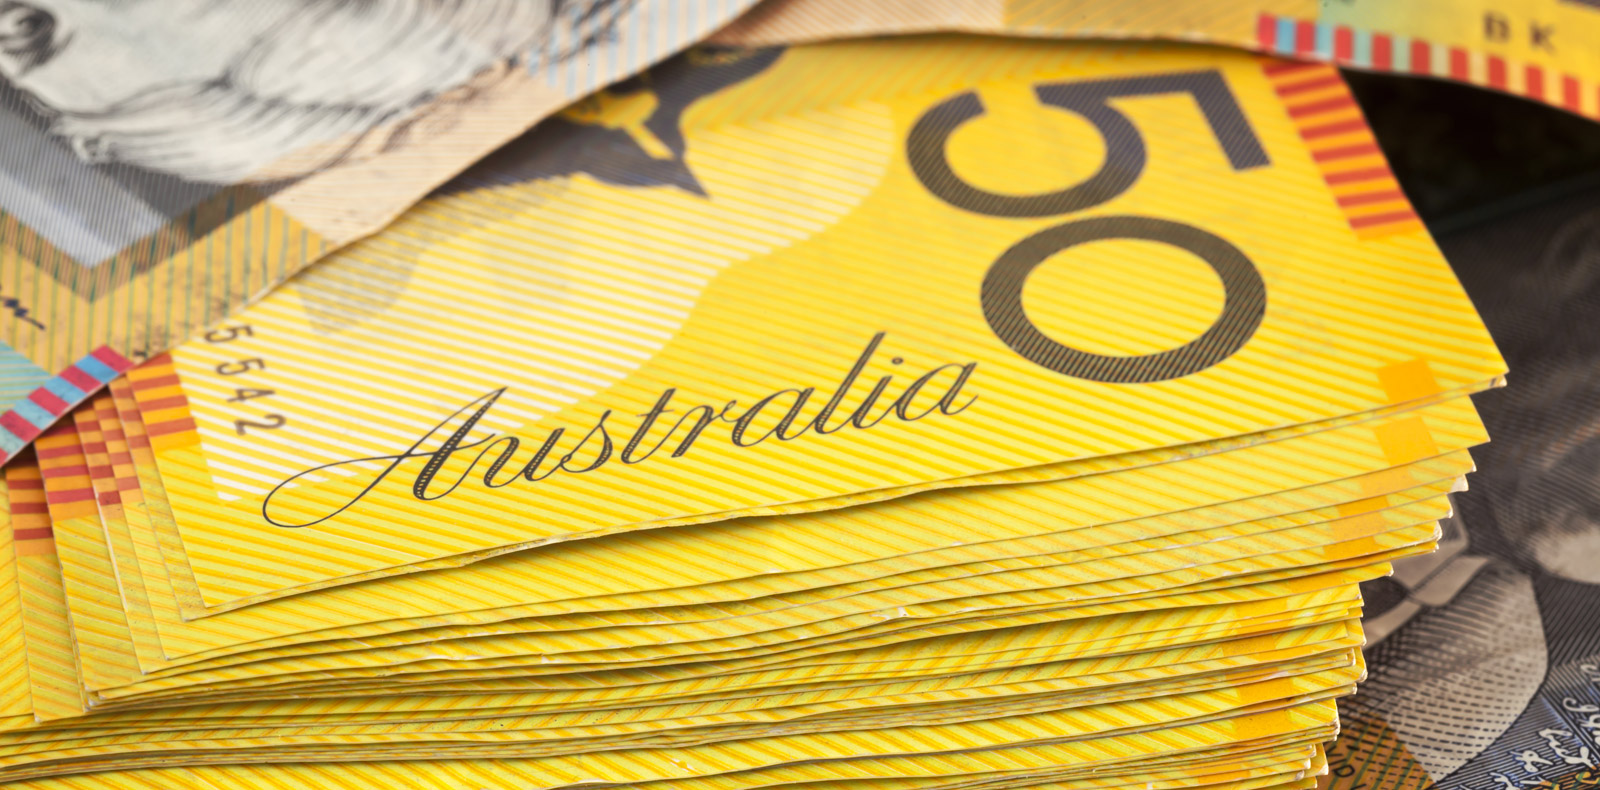 Concerning unemployment data and wage growth figures weigh on the Australian dollar.